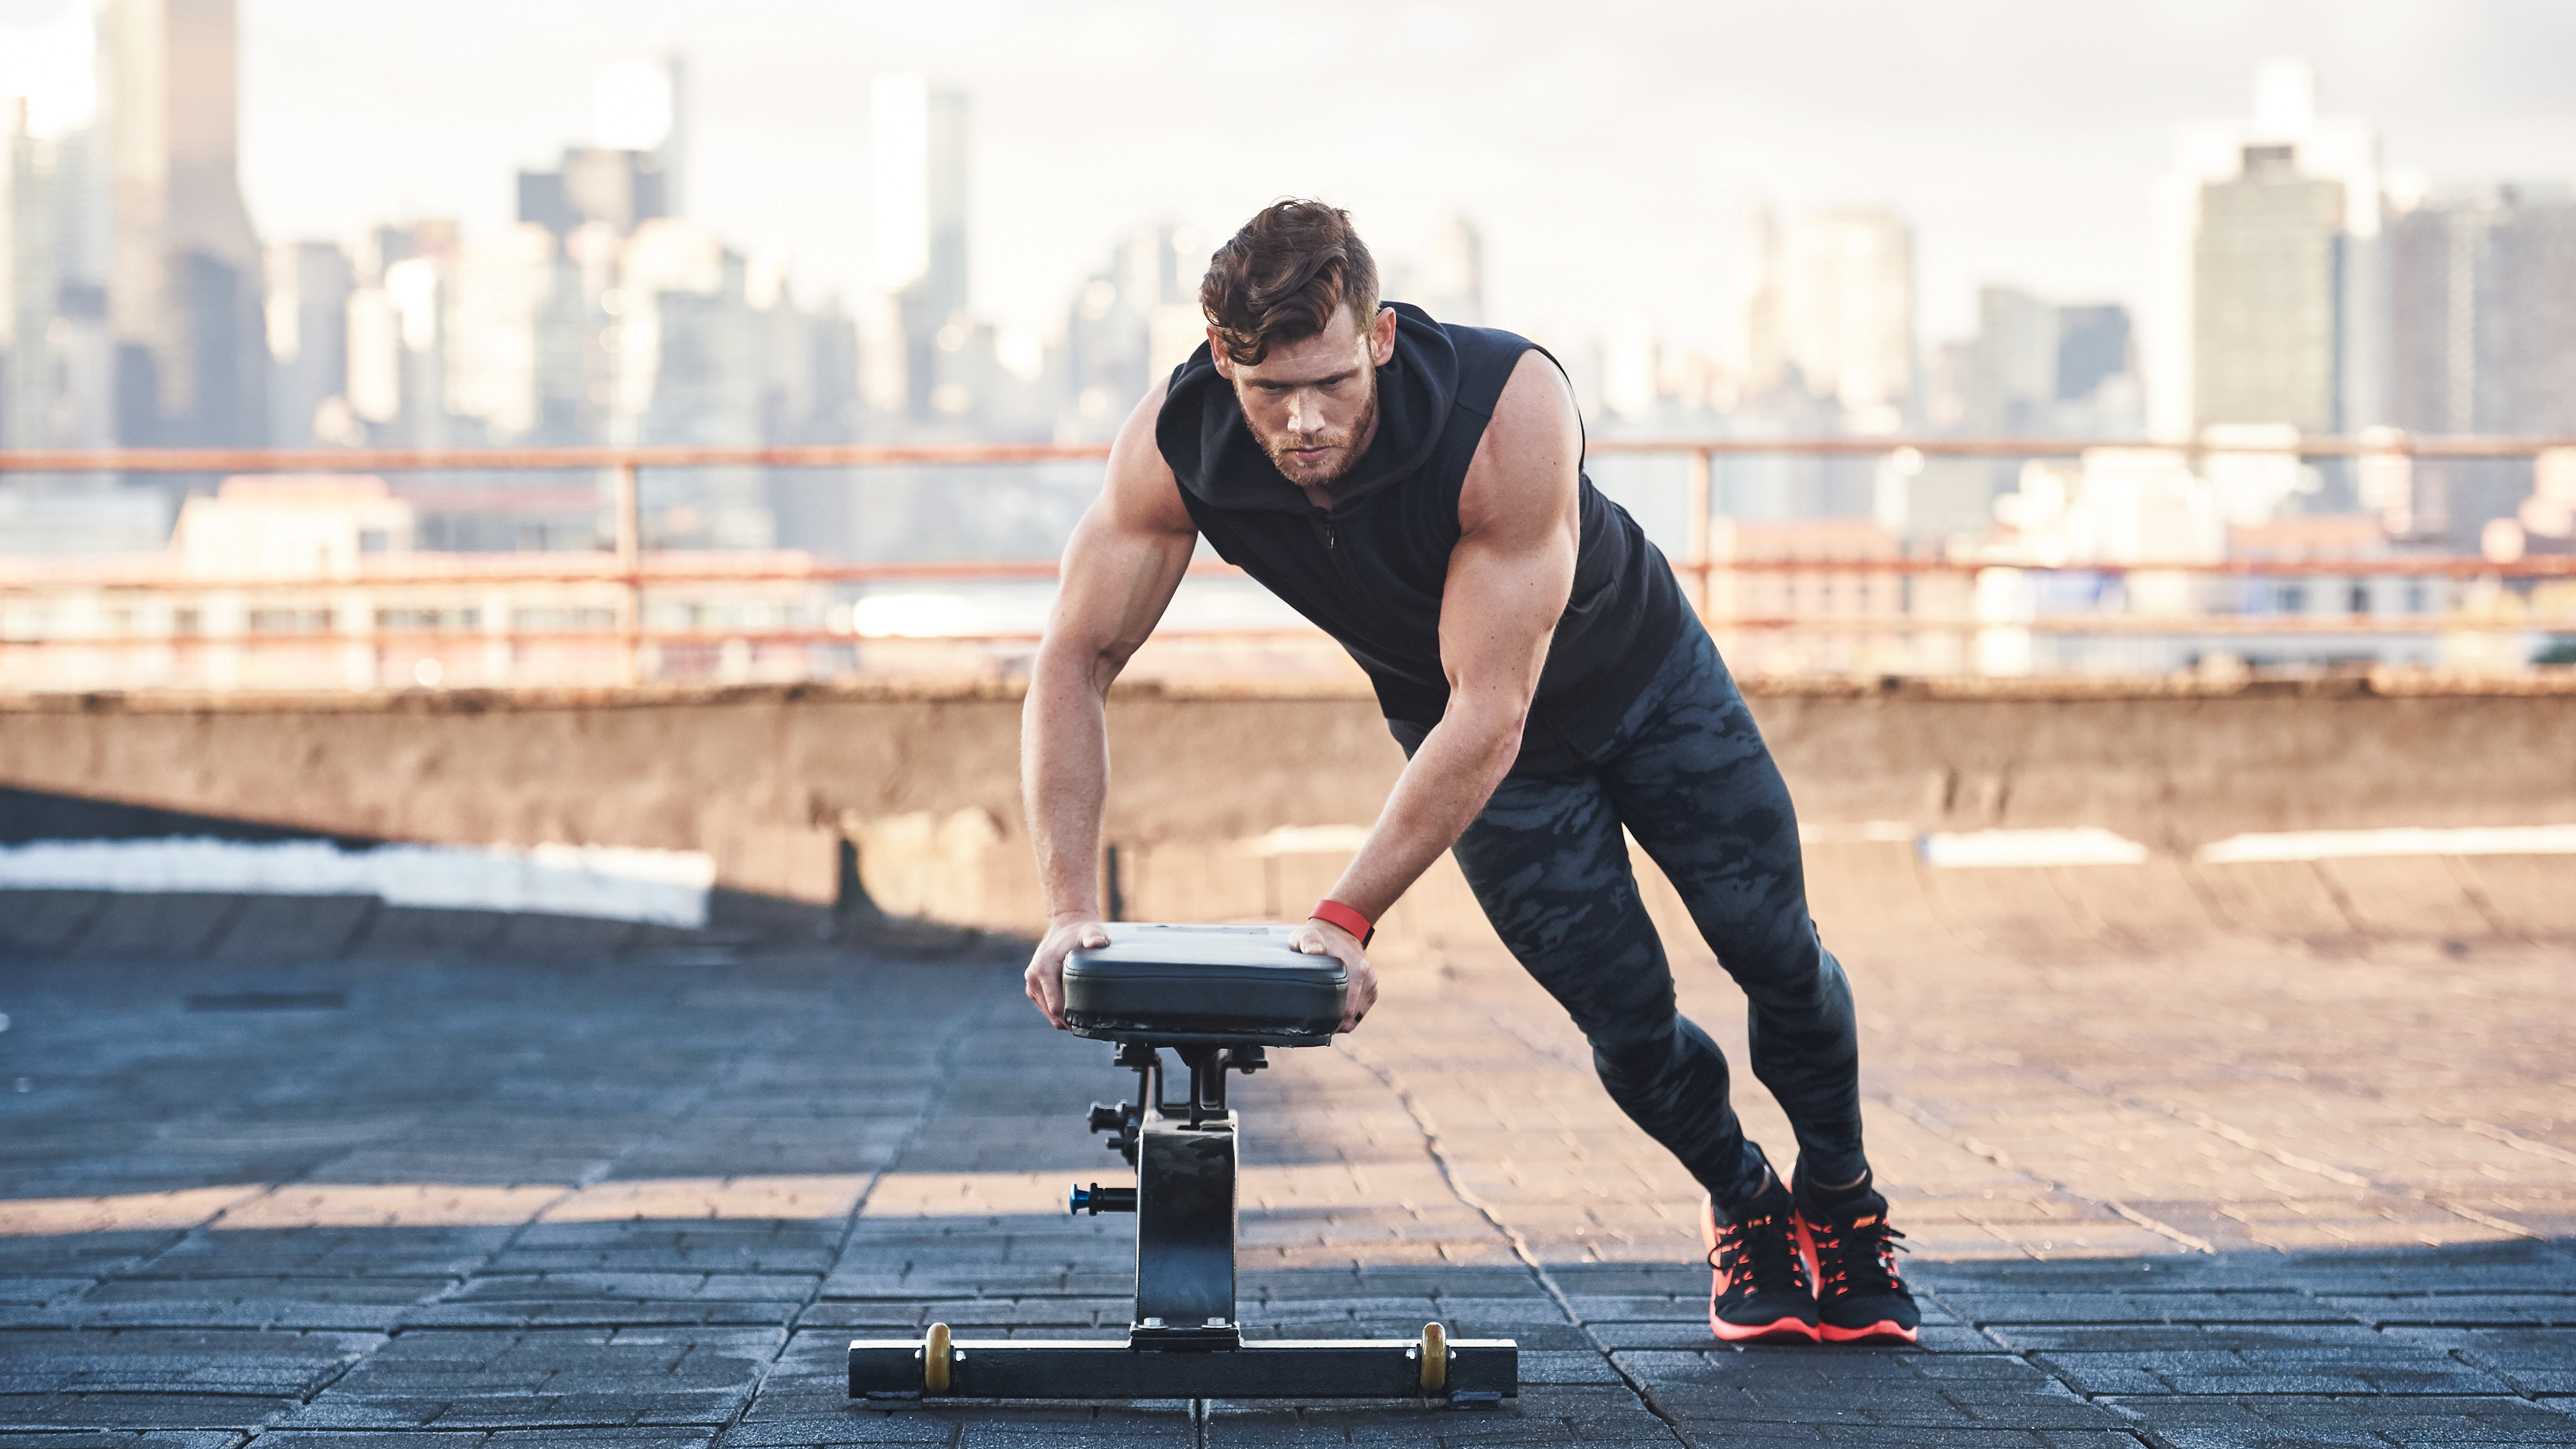 Workout of the Month: The 4-Move Total-body Bench Workout